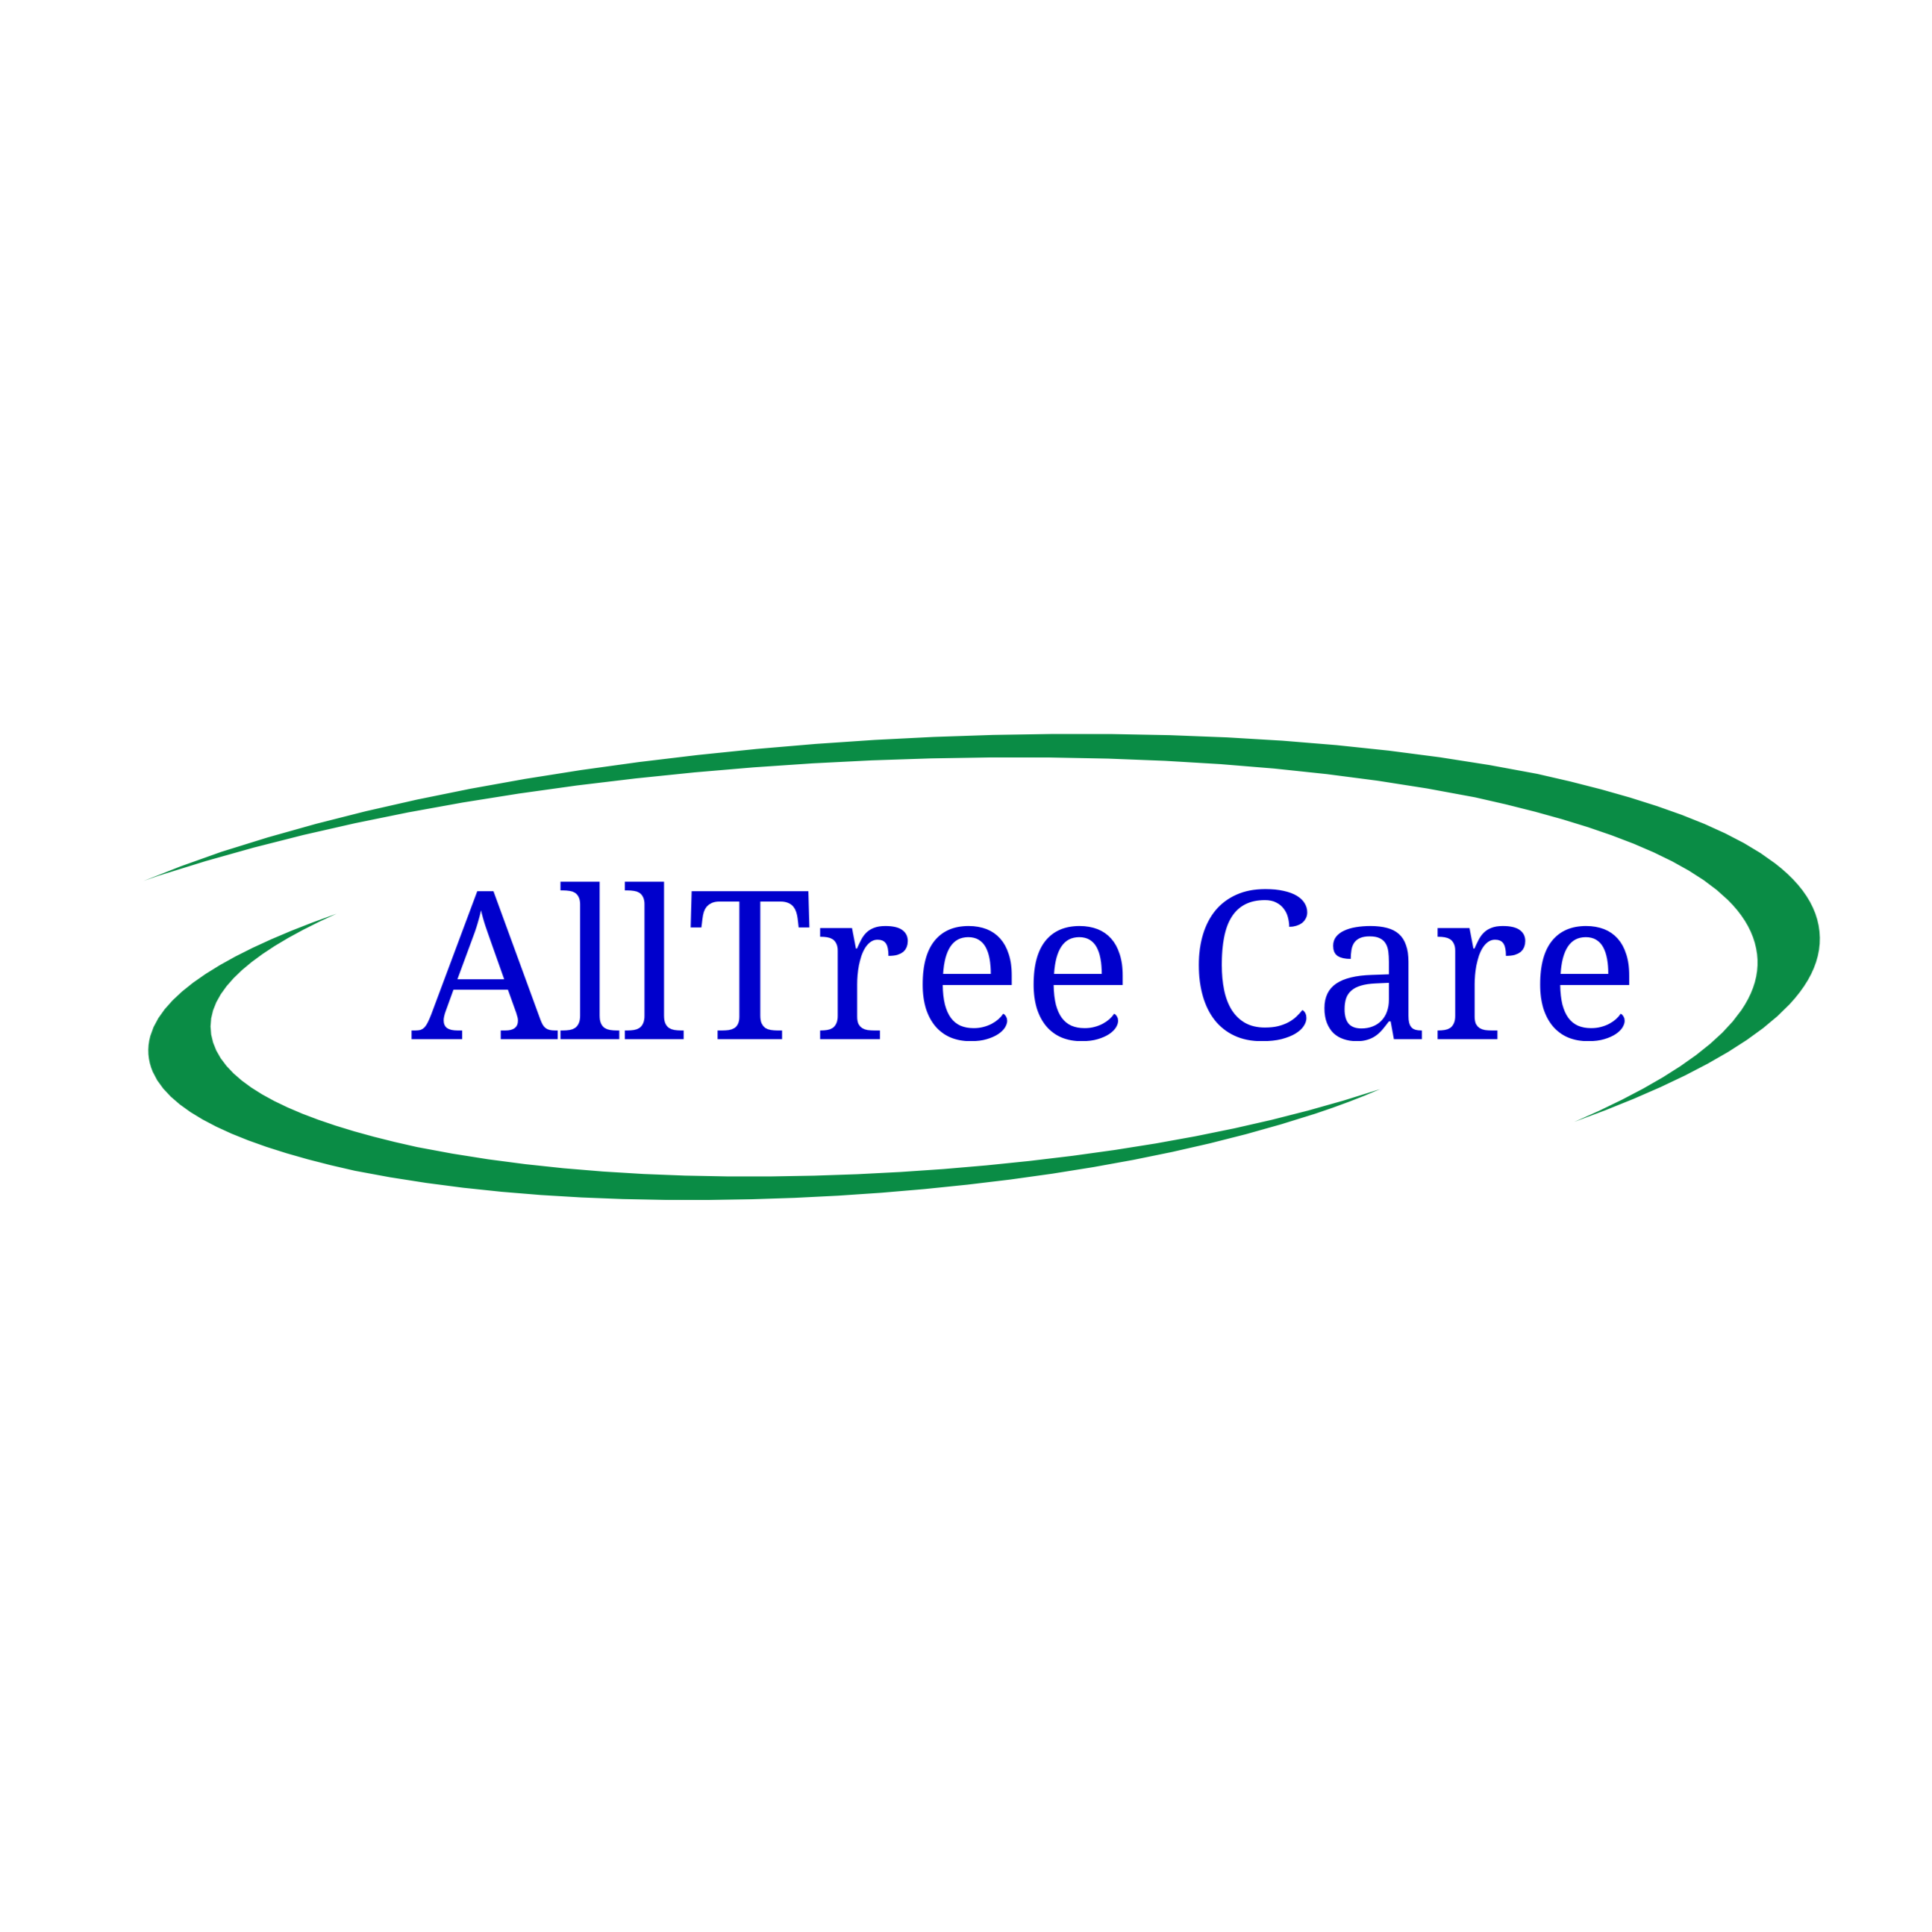 AllTree Care